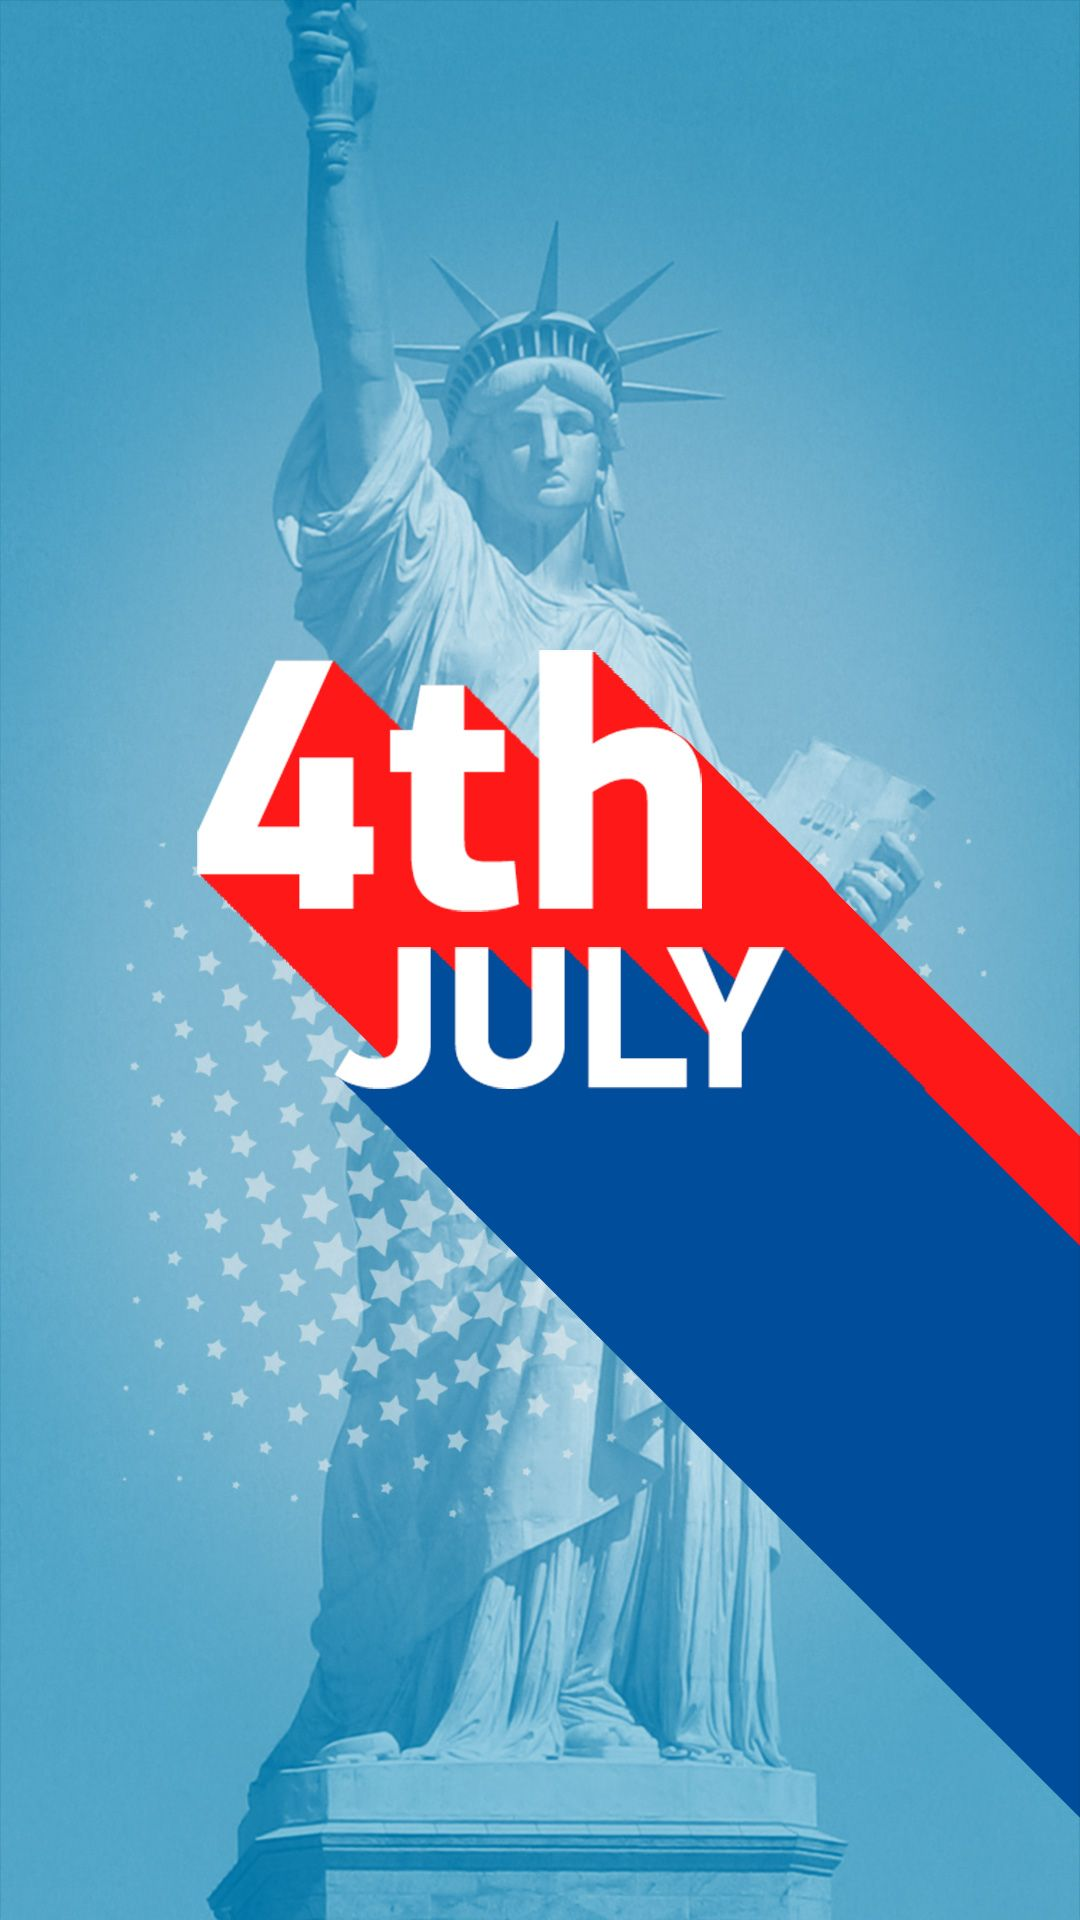 TAP AND GET THE FREE APP! Art Creative USA independence